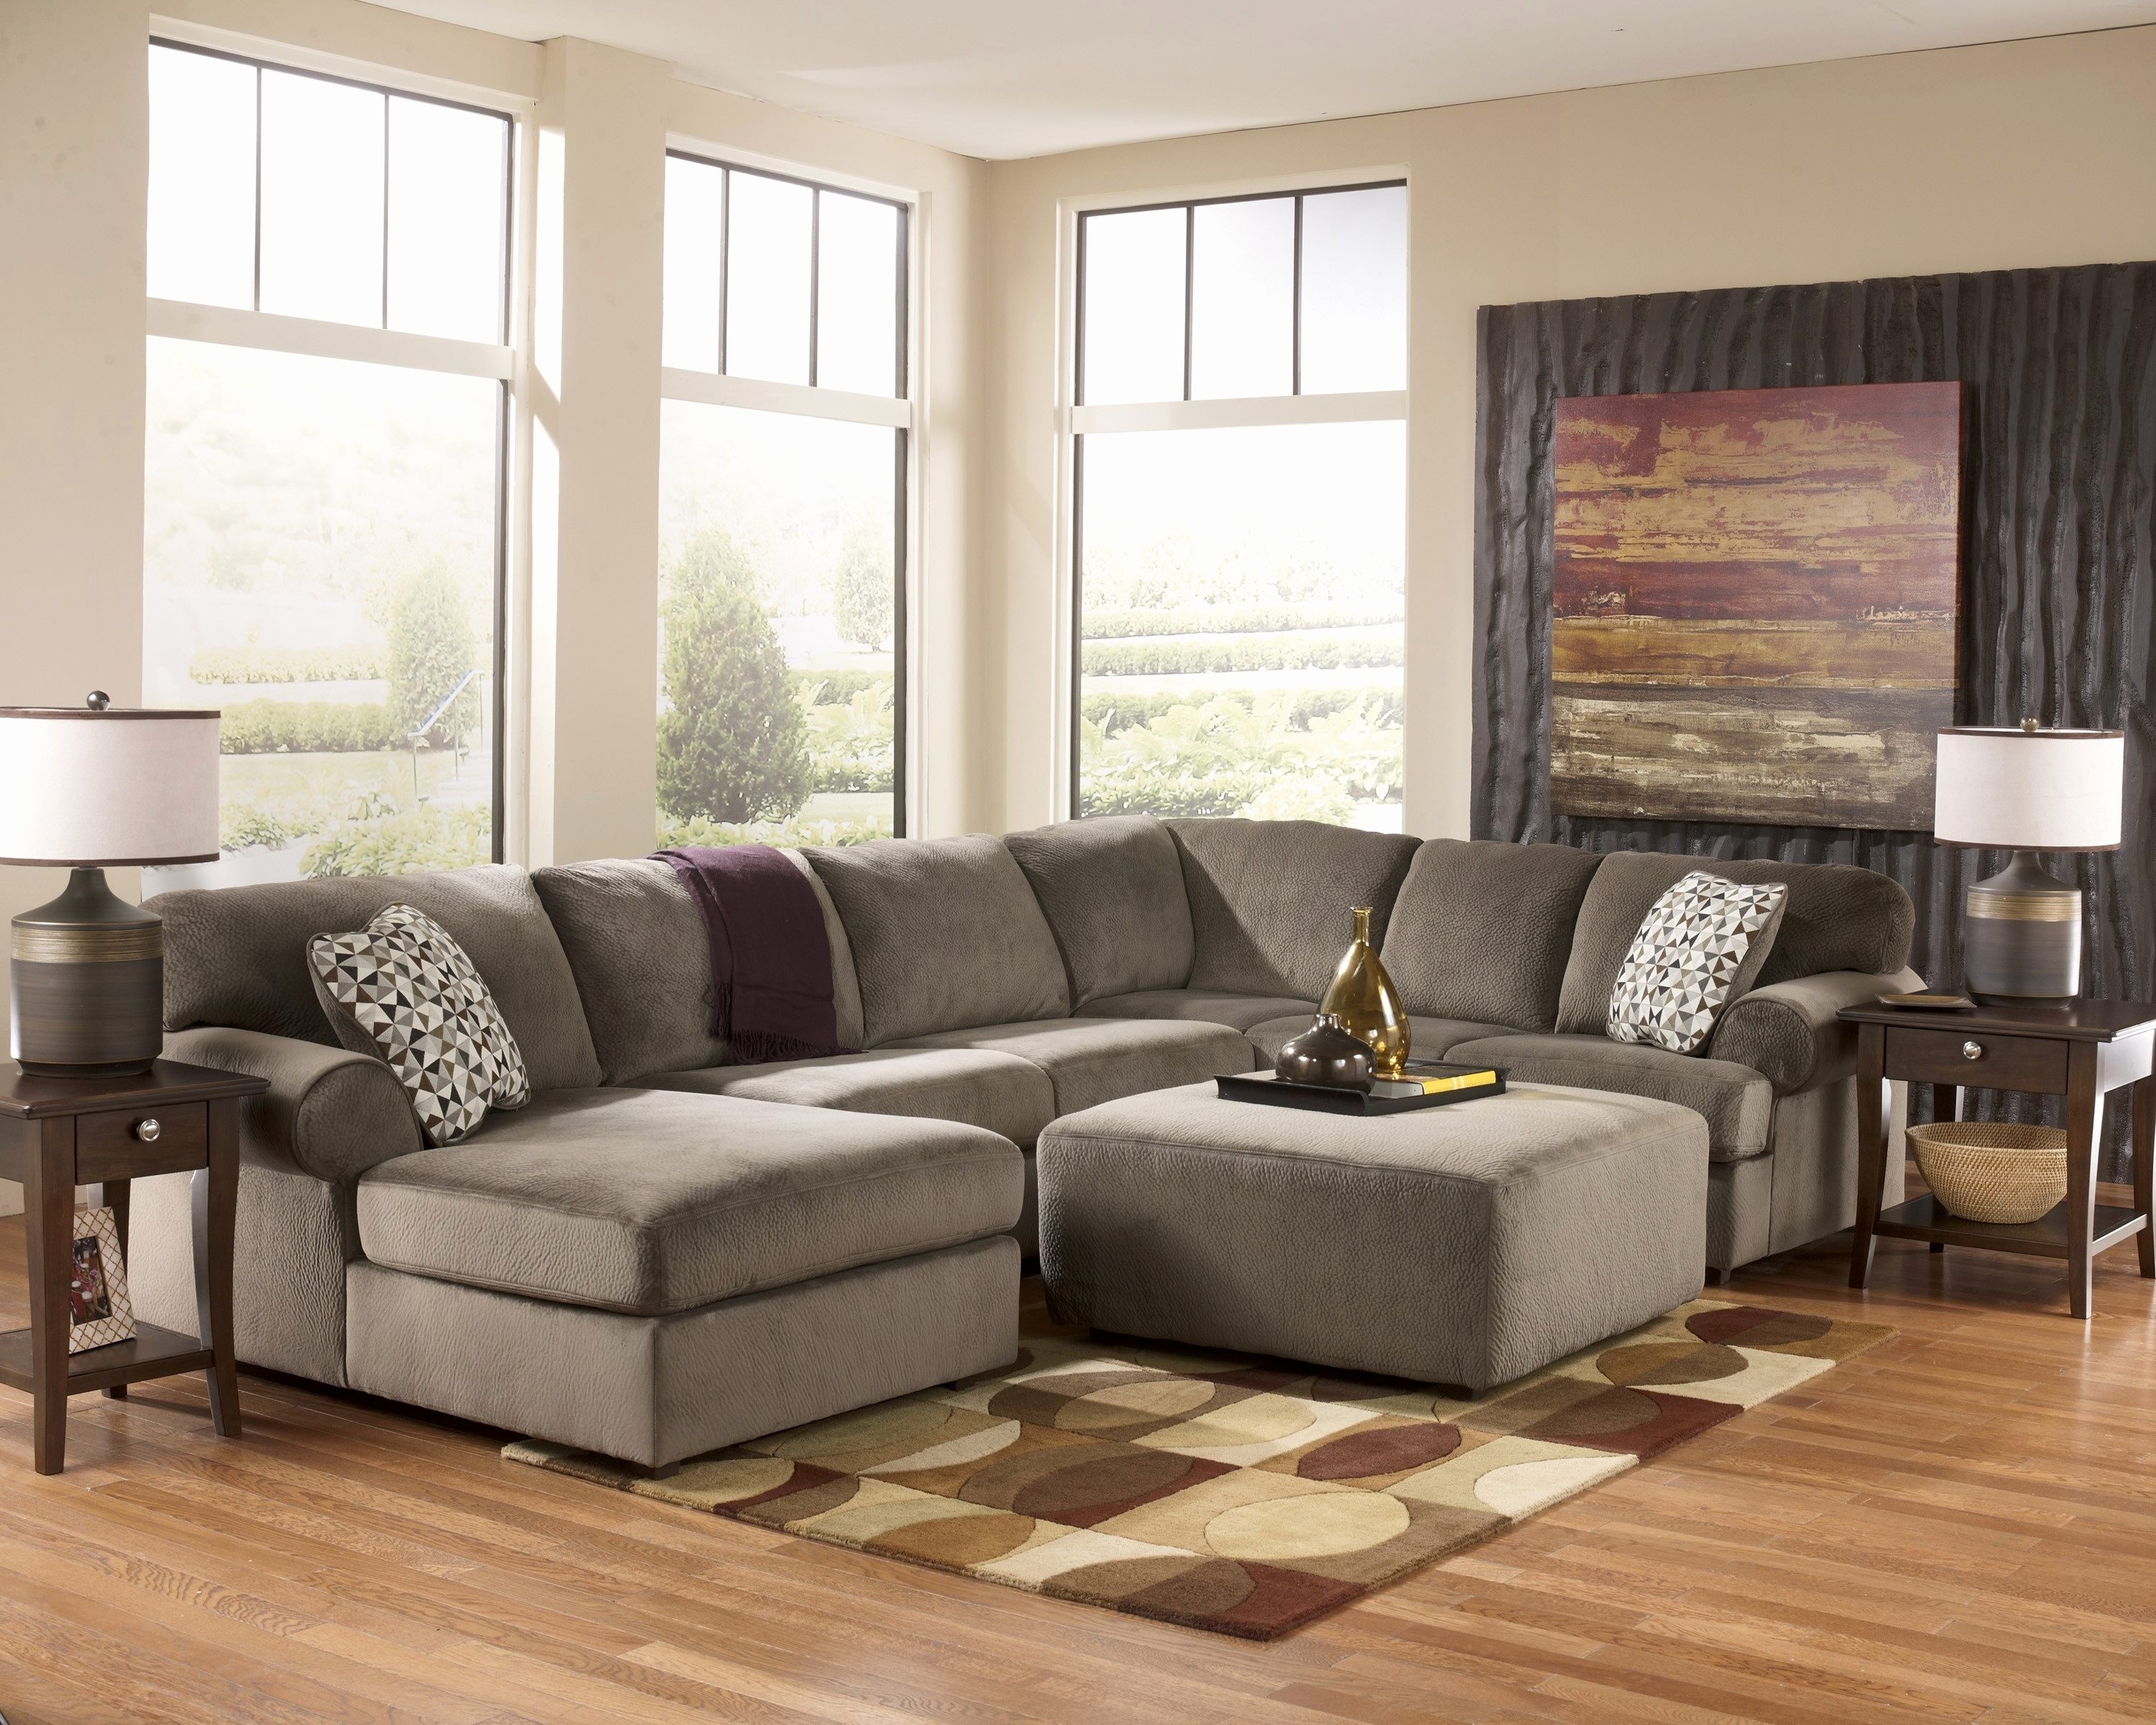 Furniture : Extra Large Sectional Sofa With Chaise And Ottoman U For Most Recently Released Sectionals With Oversized Ottoman (View 9 of 20)